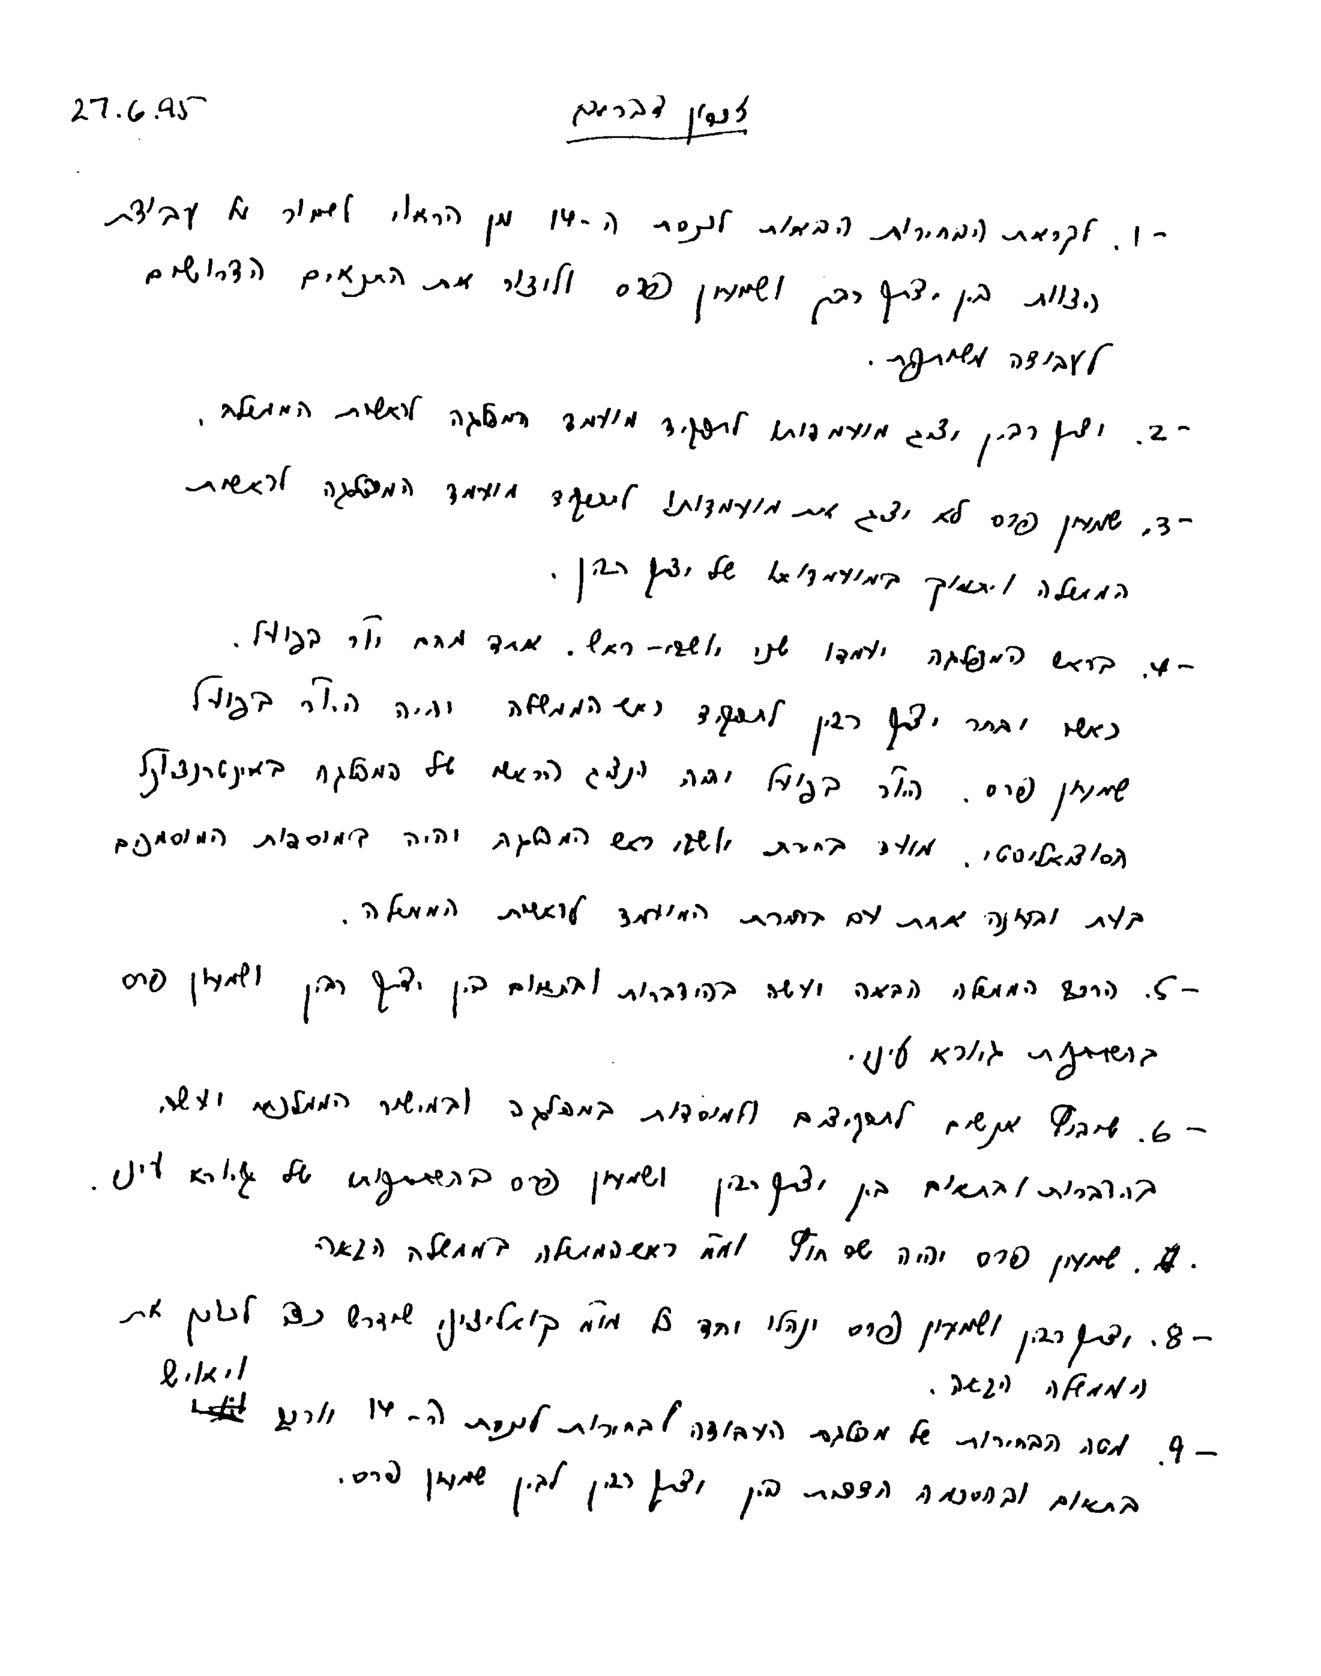 Copy of the handwritten note